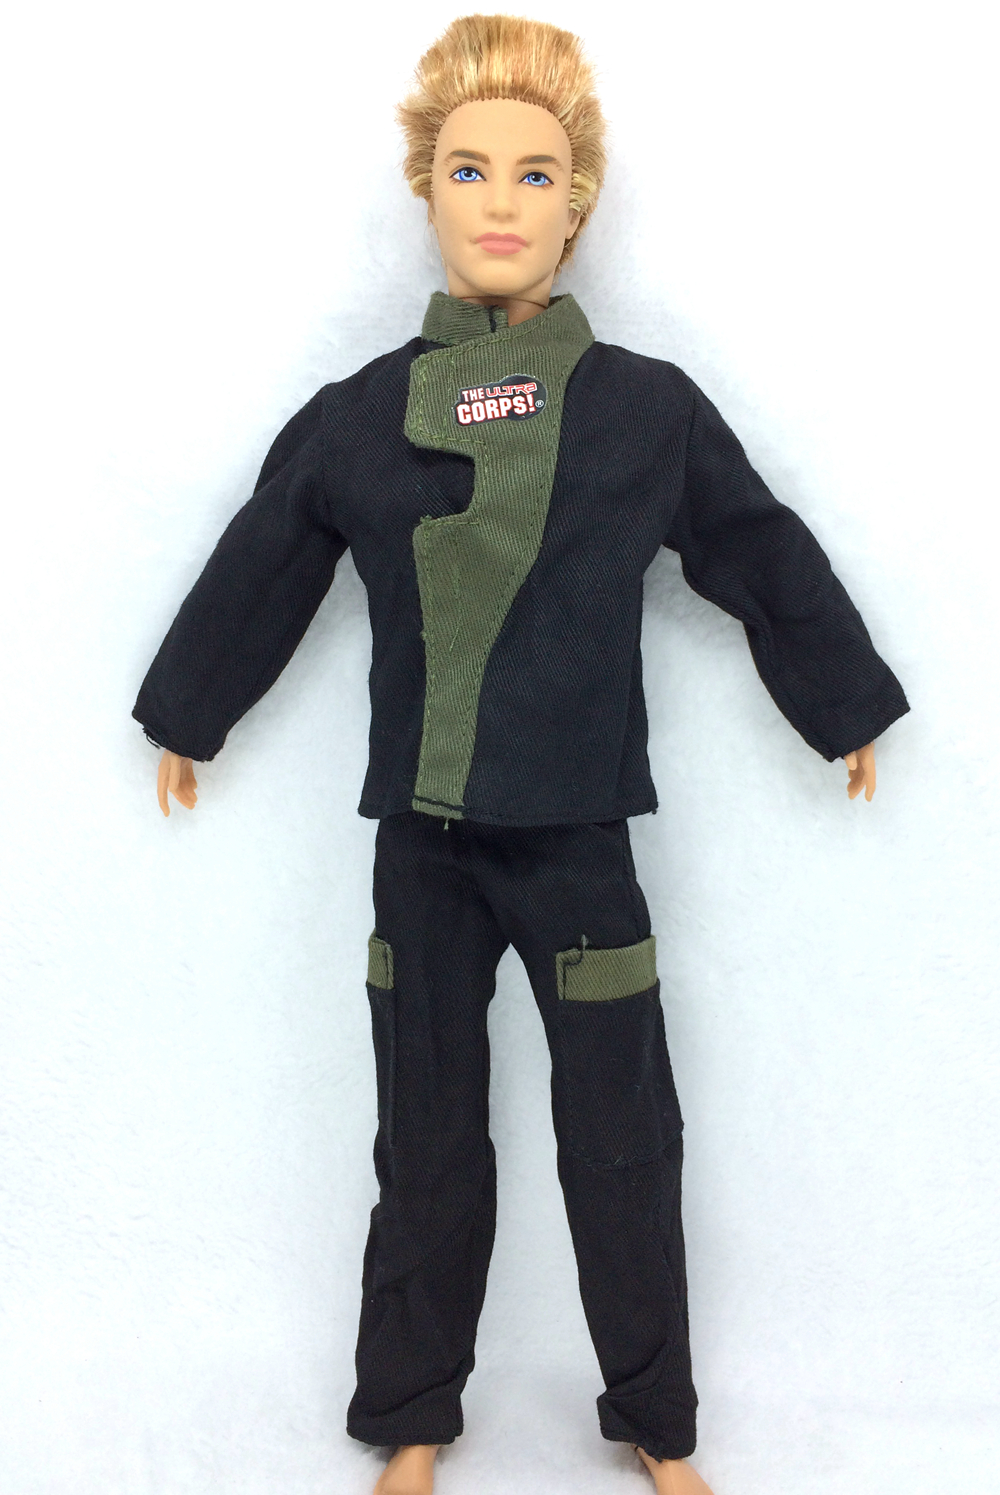 NK Authentic Prince Garments Fight Police Uniform Cop Outfit For Barbie Boy Male Ken Doll For Lanard  1/6 Soldier  Finest Present 016A